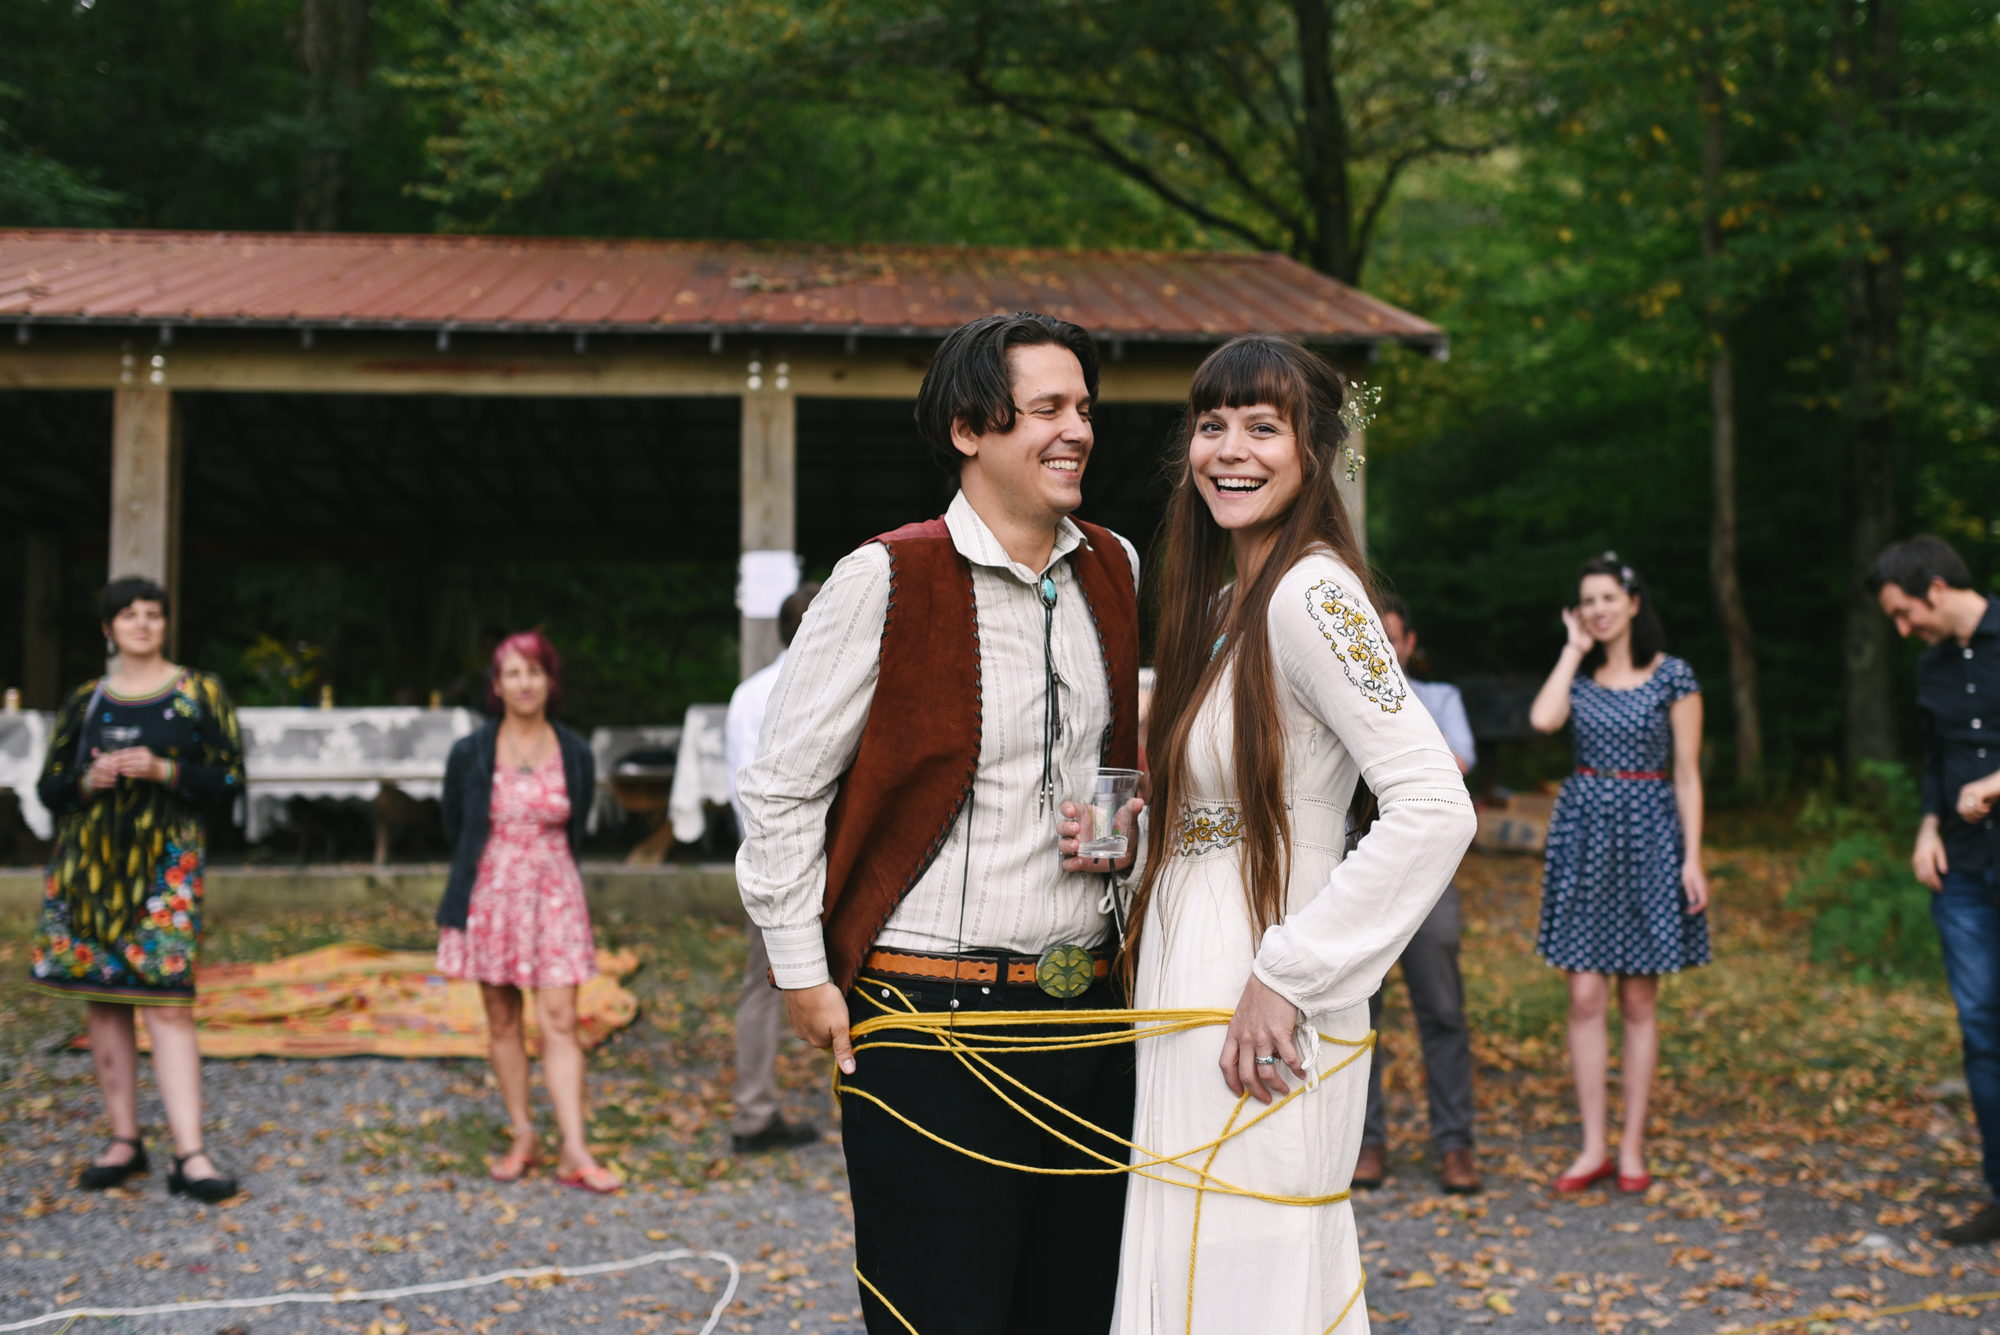 Mountain Wedding, Outdoors, Rustic, West Virginia, Maryland Wedding Photographer, DIY, Casual, bride and groom tied together with yarn, laughing and smiling together